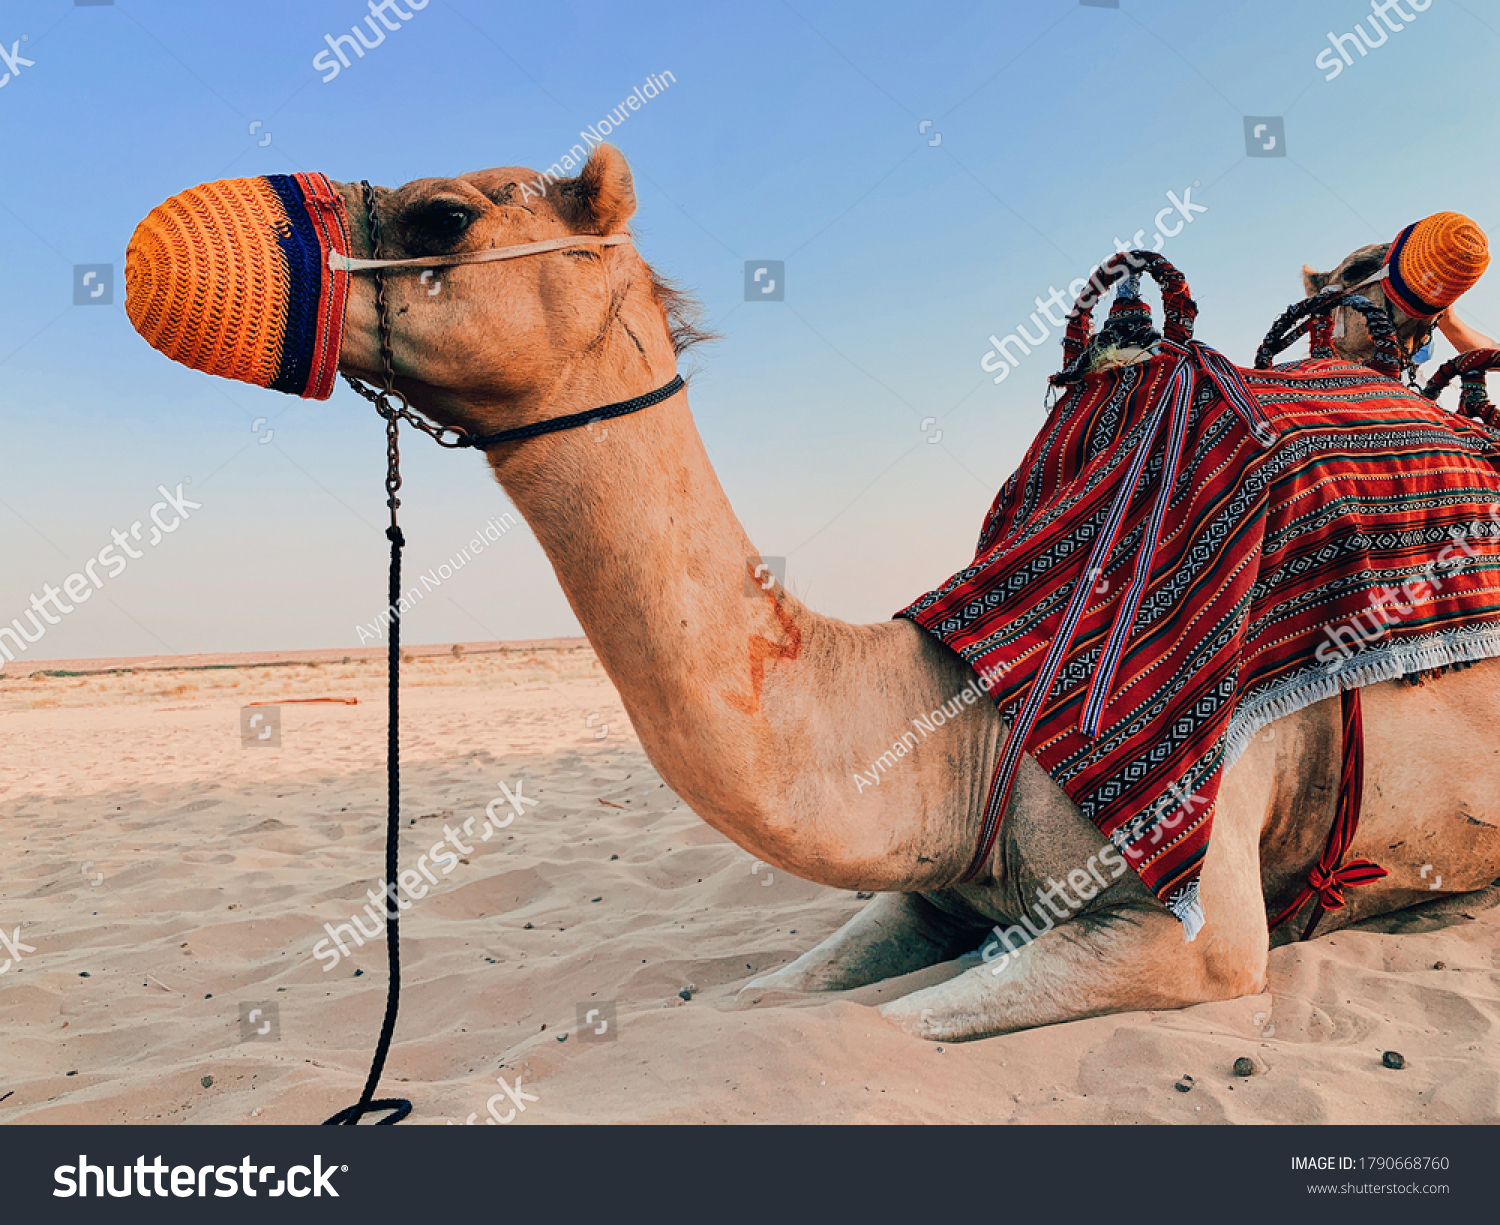 stock-photo-closeup-look-at-camel-with-n